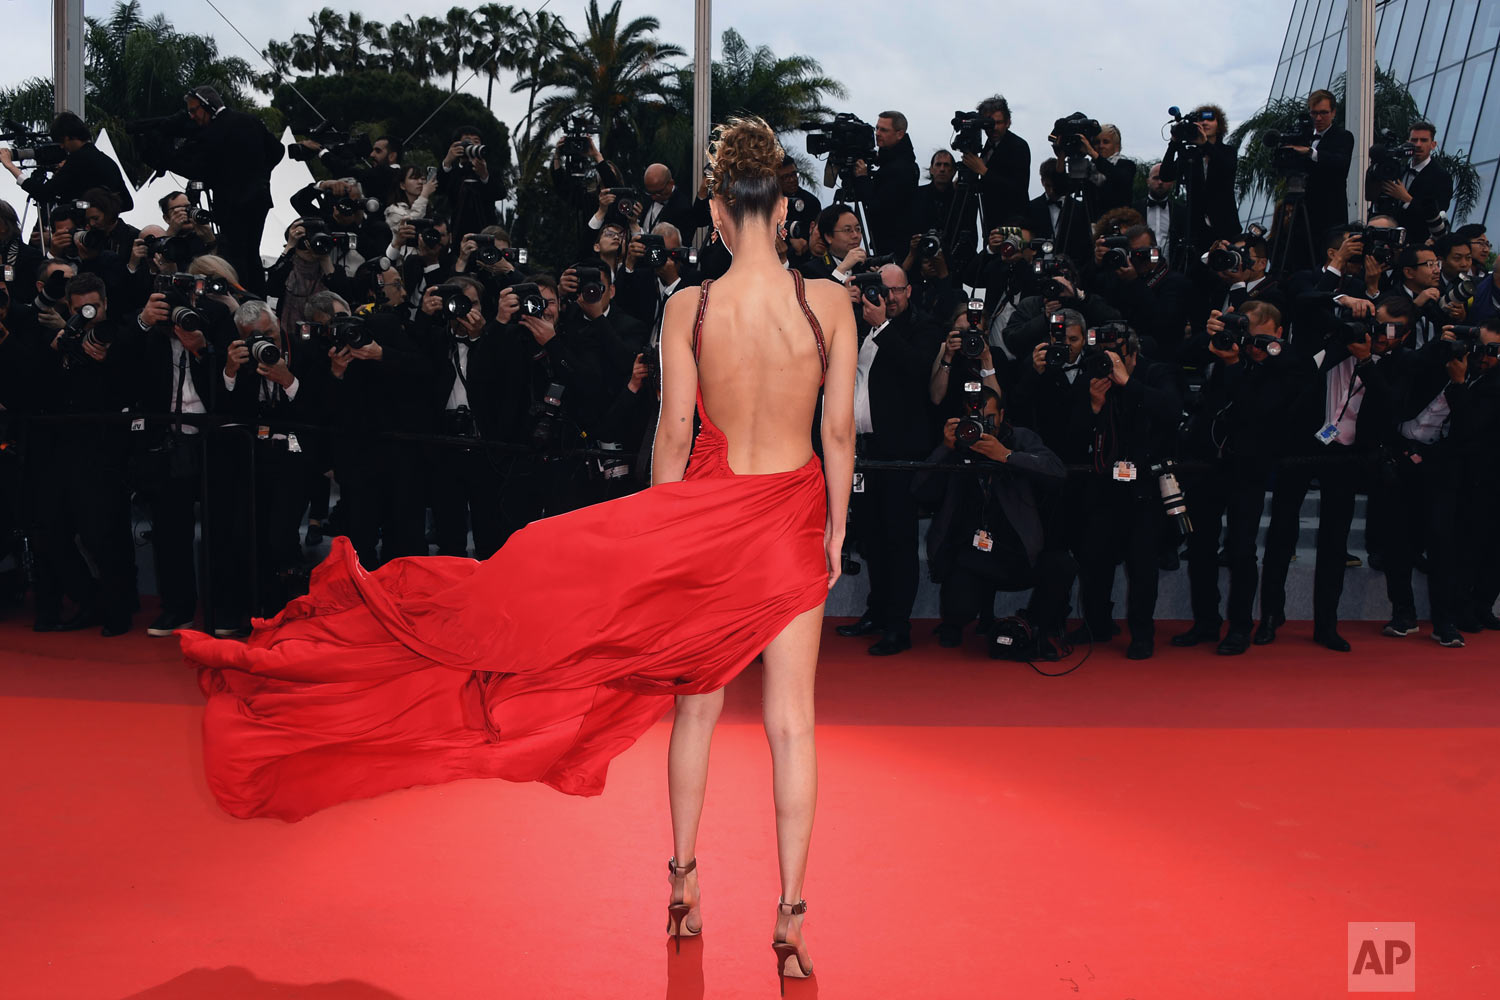 Model Bella Hadid poses for photographers at the photo call for the film 'Pain and Glory' at the 72nd international film festival, Cannes, southern France, May 17, 2019. (Photo by Arthur Mola/Invision/AP)